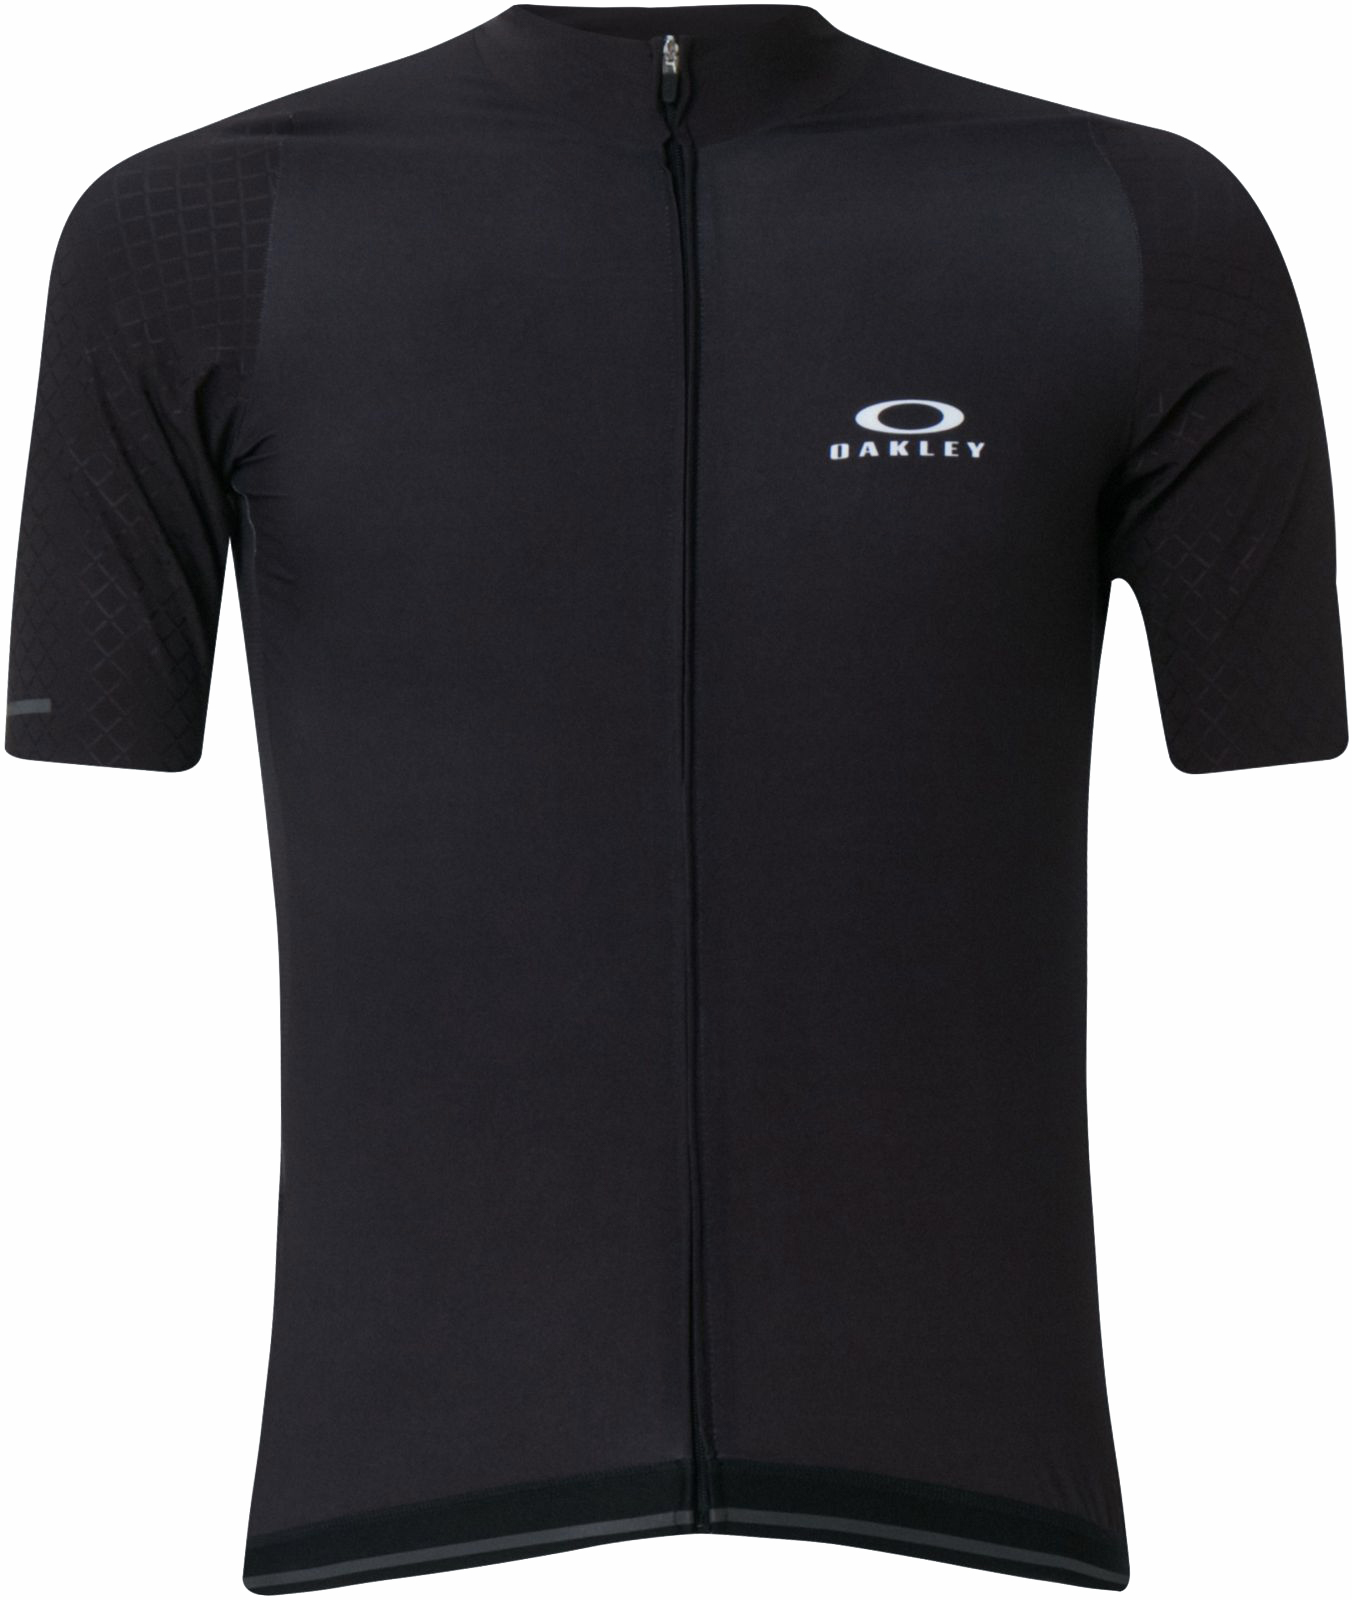 Oakley Aero Jersey 2.0 - blackout XL